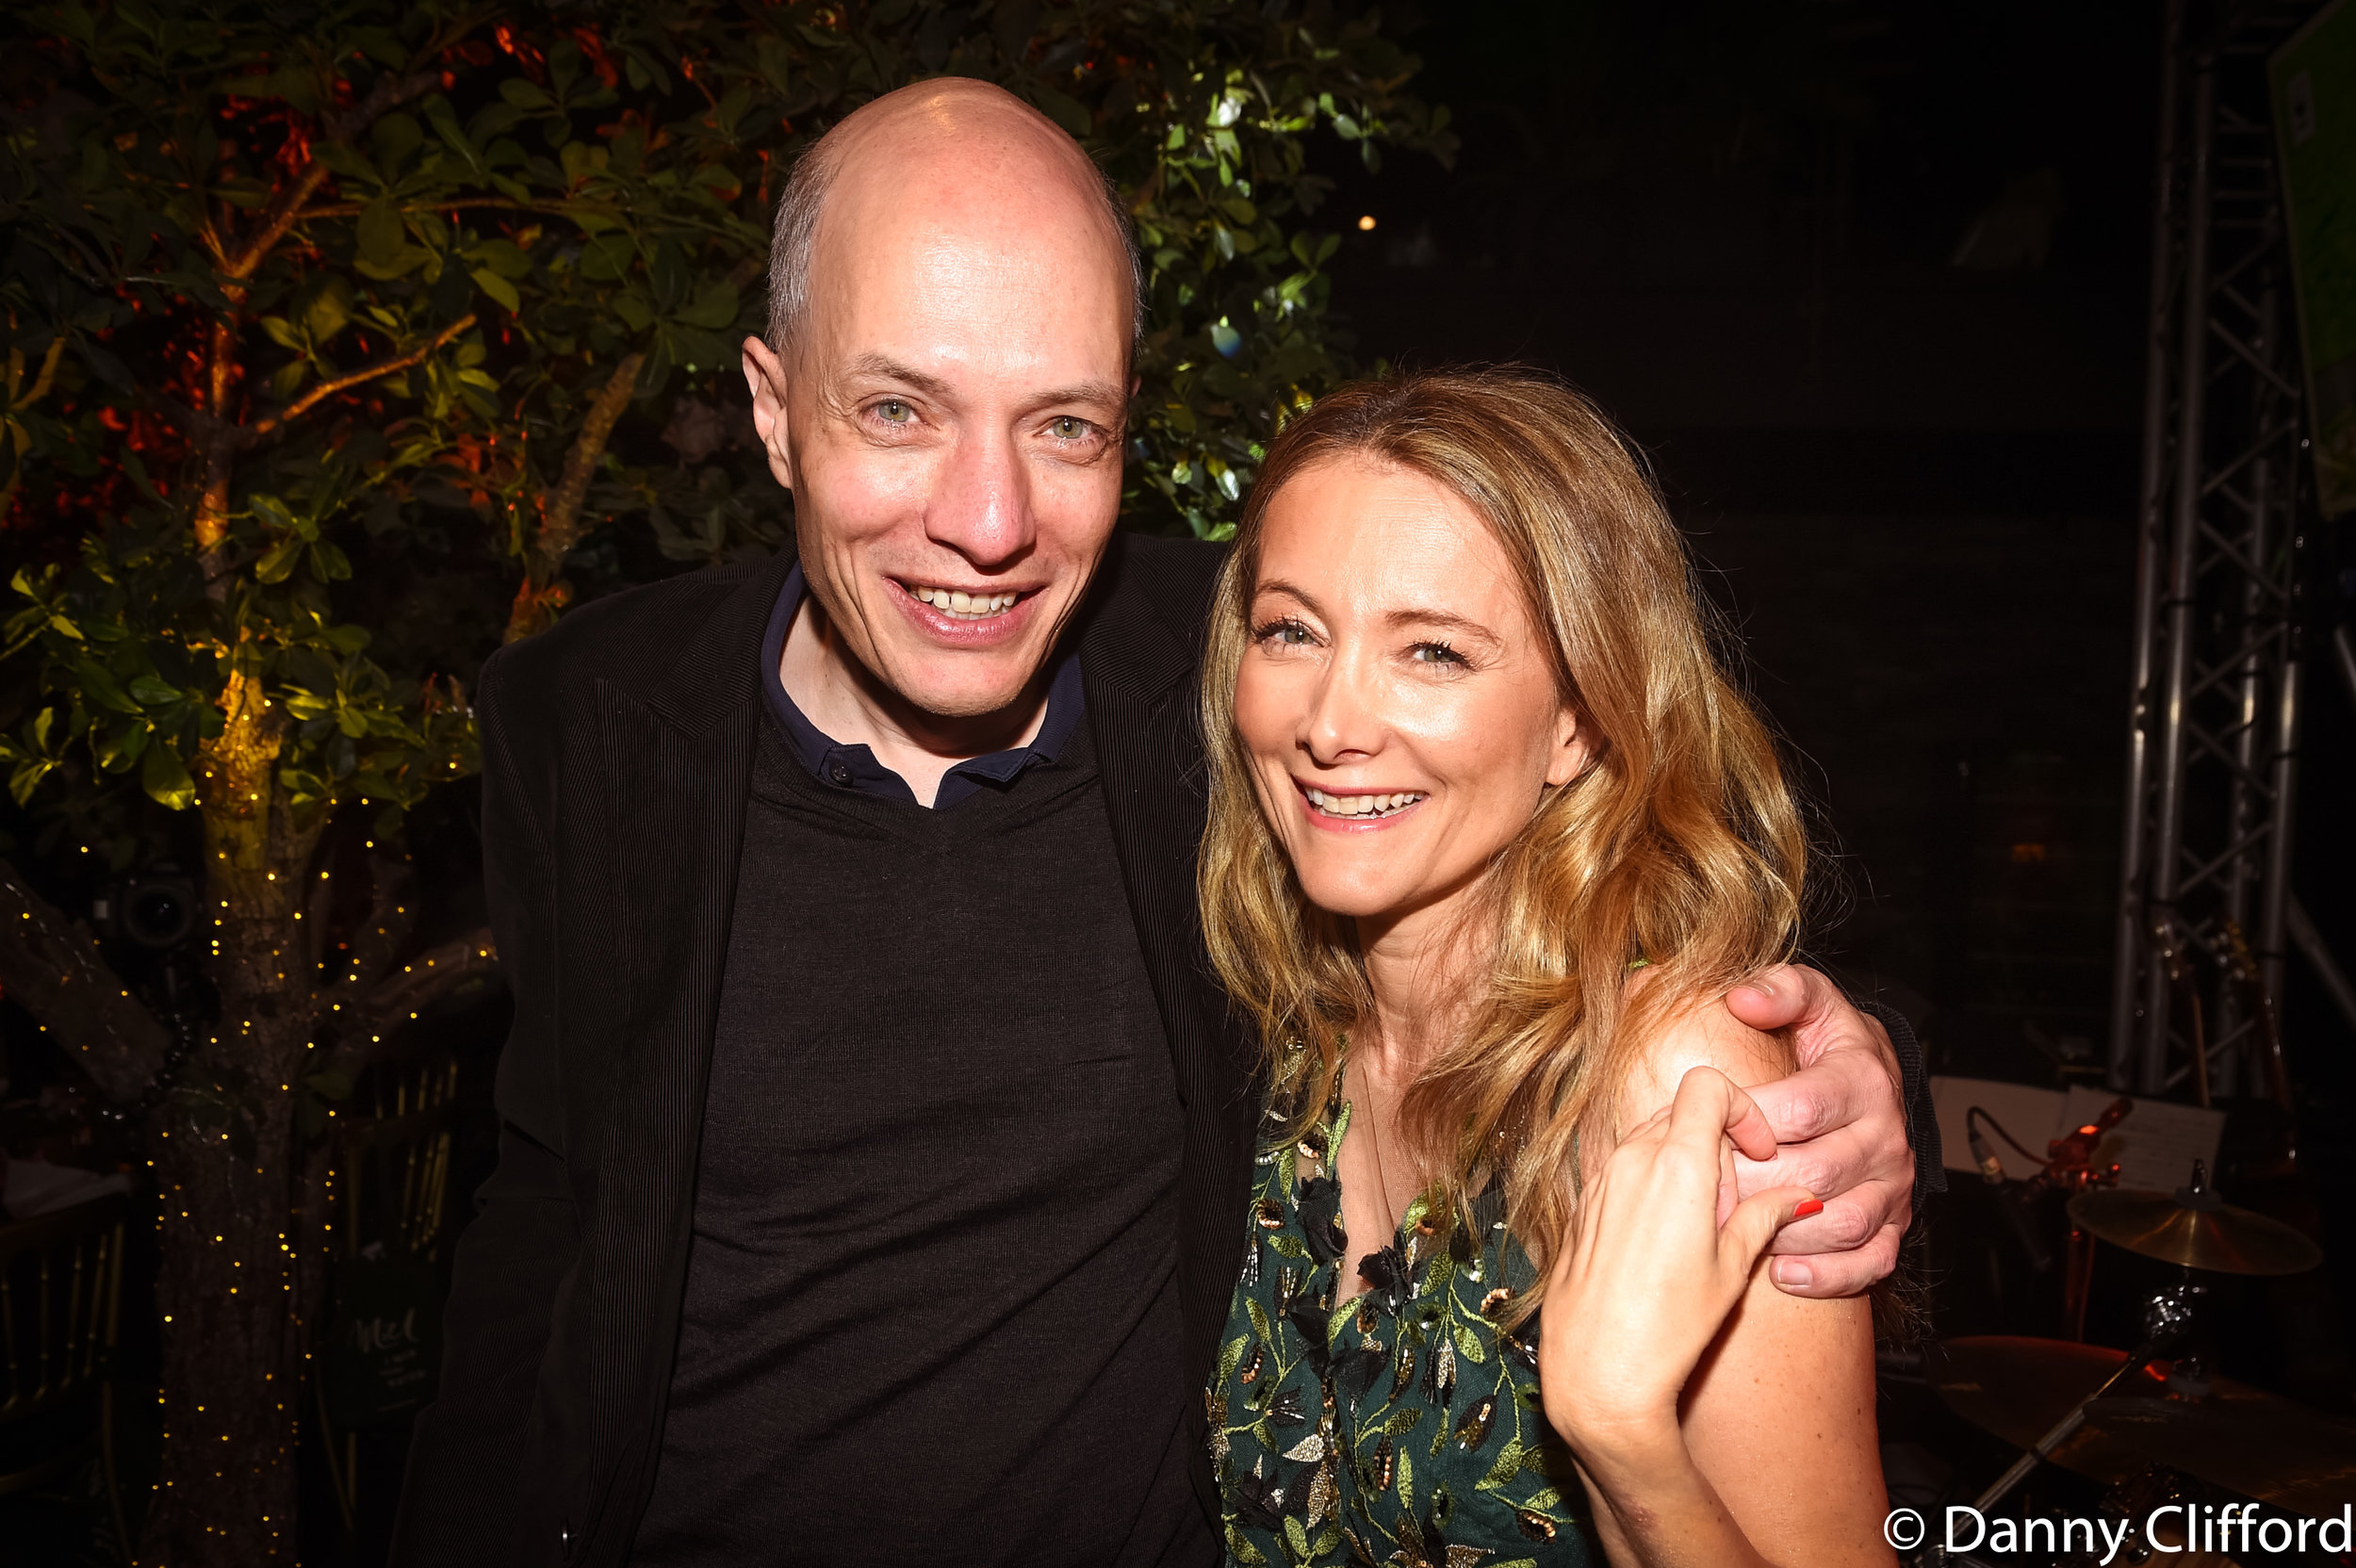 Brother & Sister! Miel with her brother, Alain de Botton after the show.